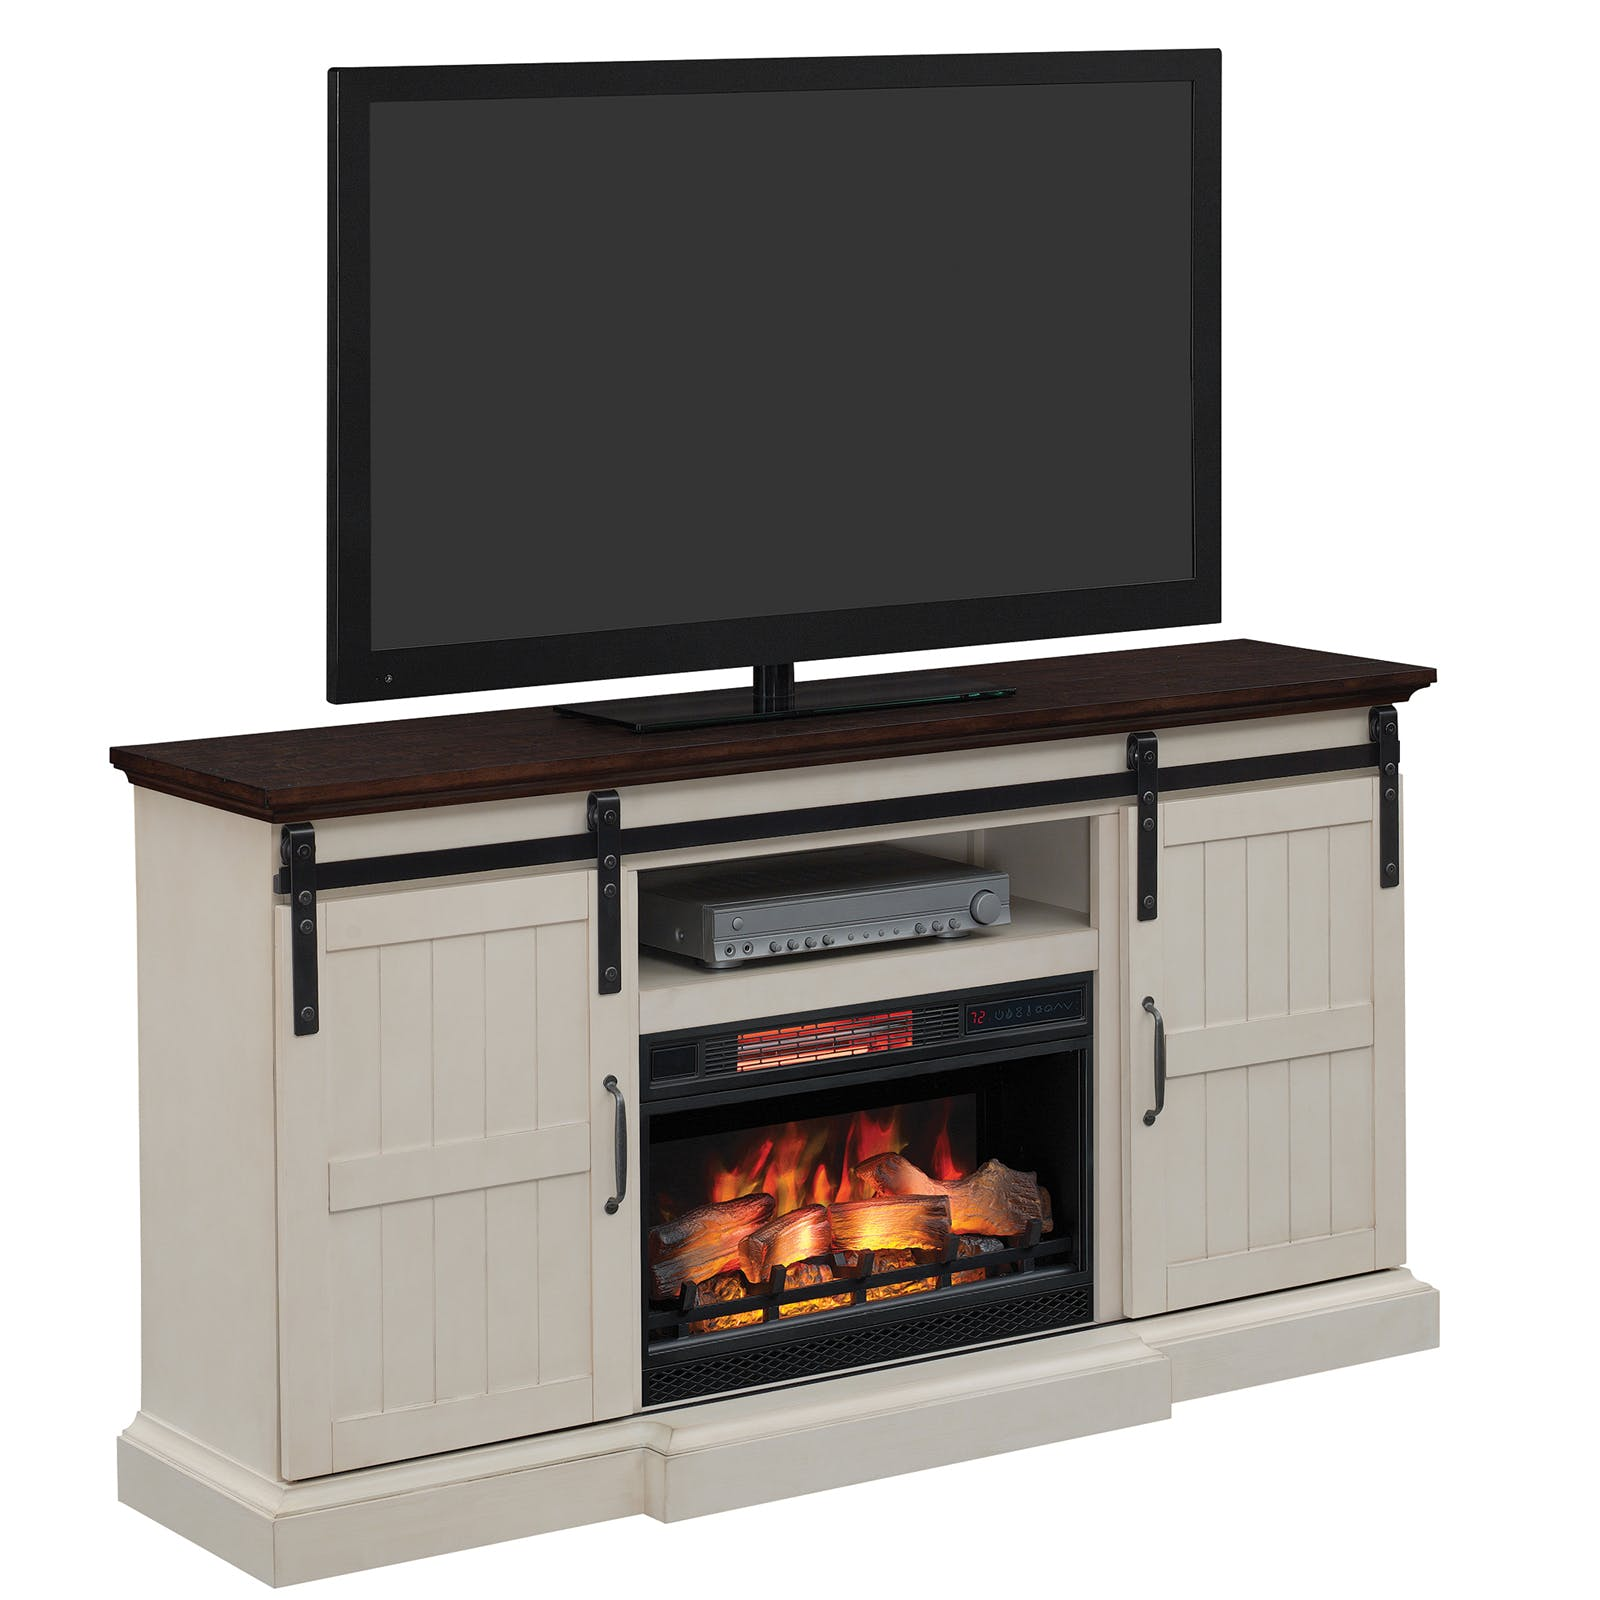 Weathered White Tv Stand With Fireplace Insert Furniture Fair